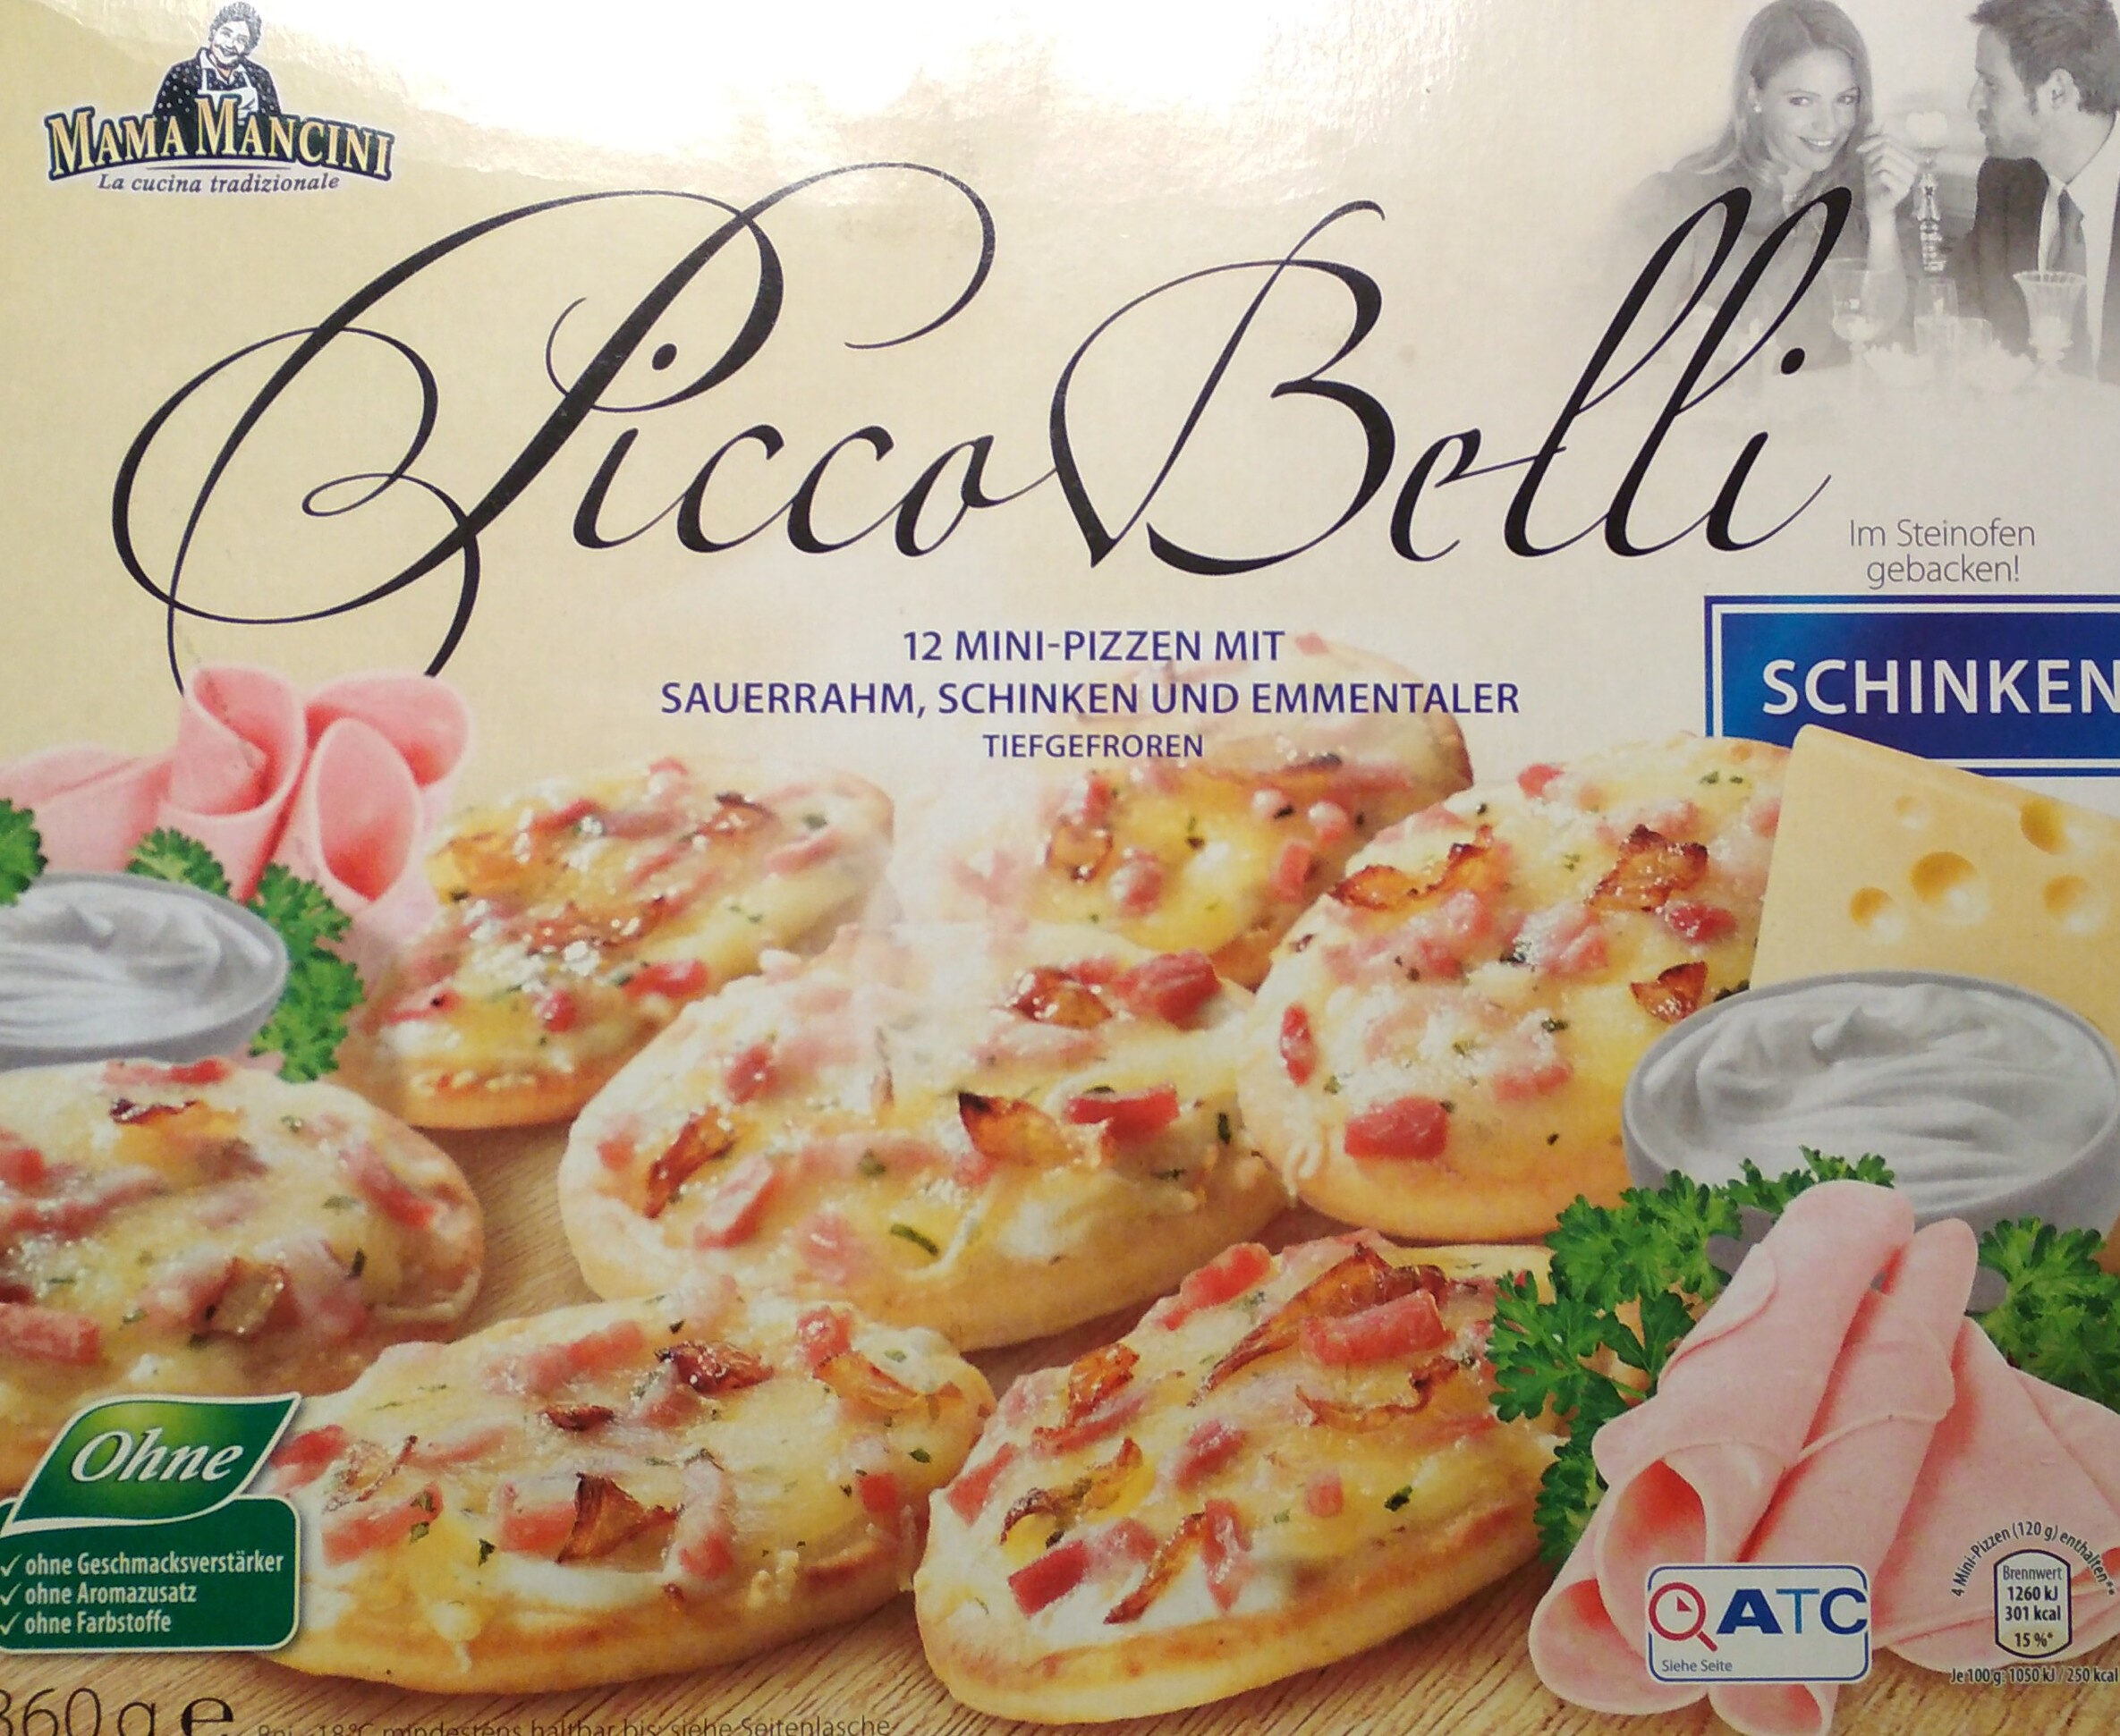 Picco Belli Mini-Pizzen Schinken - Product - de